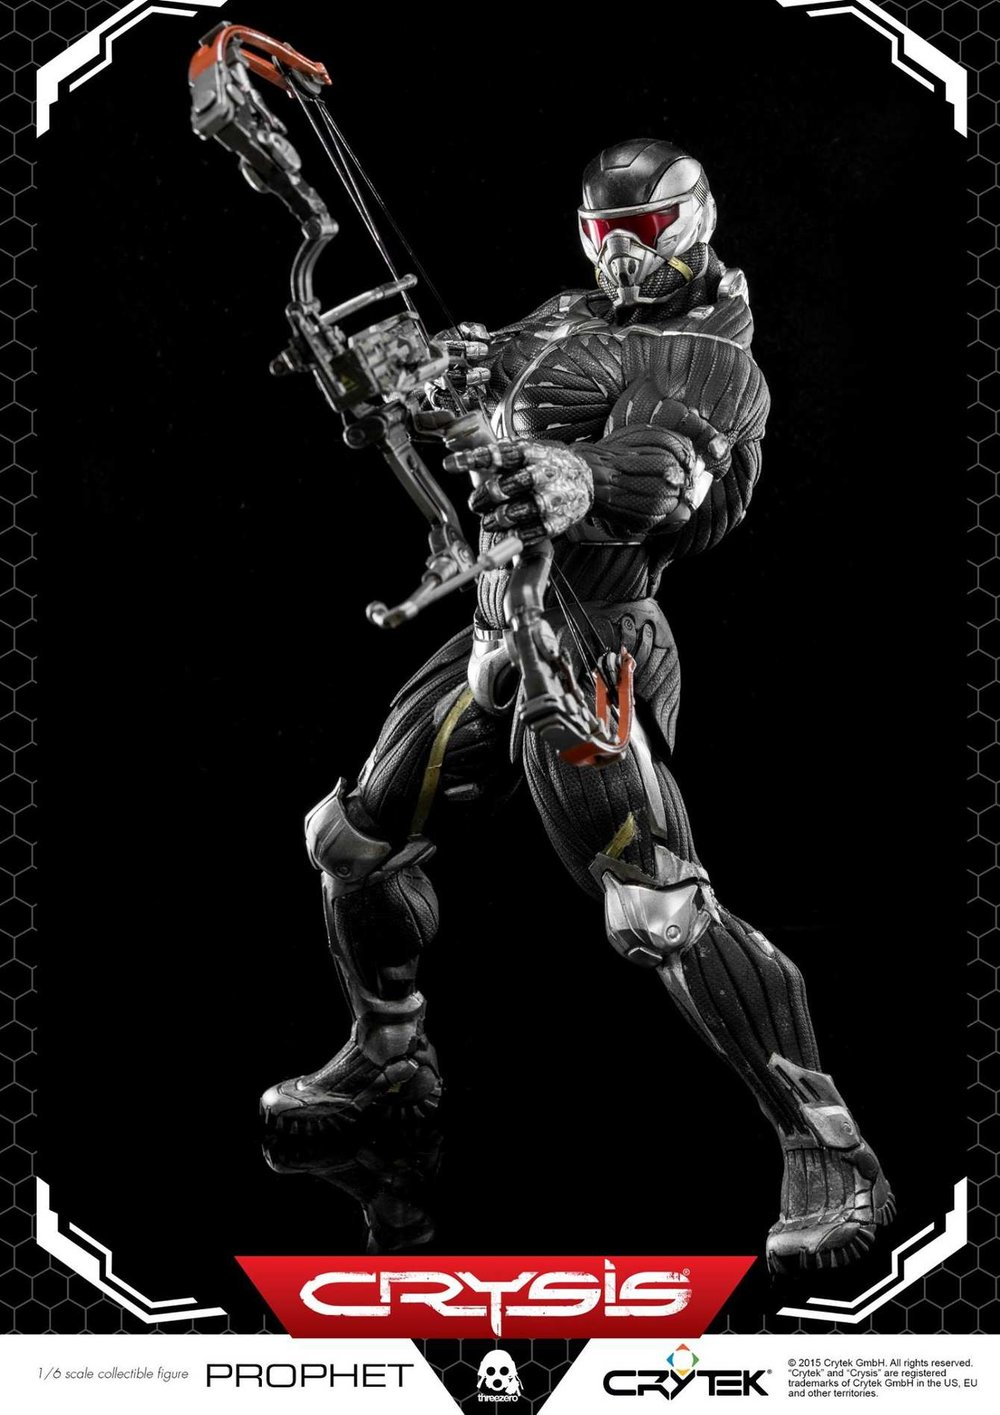 ThreeZero-Crysis-video-game-Prophet-CRY18_1340_c.jpg